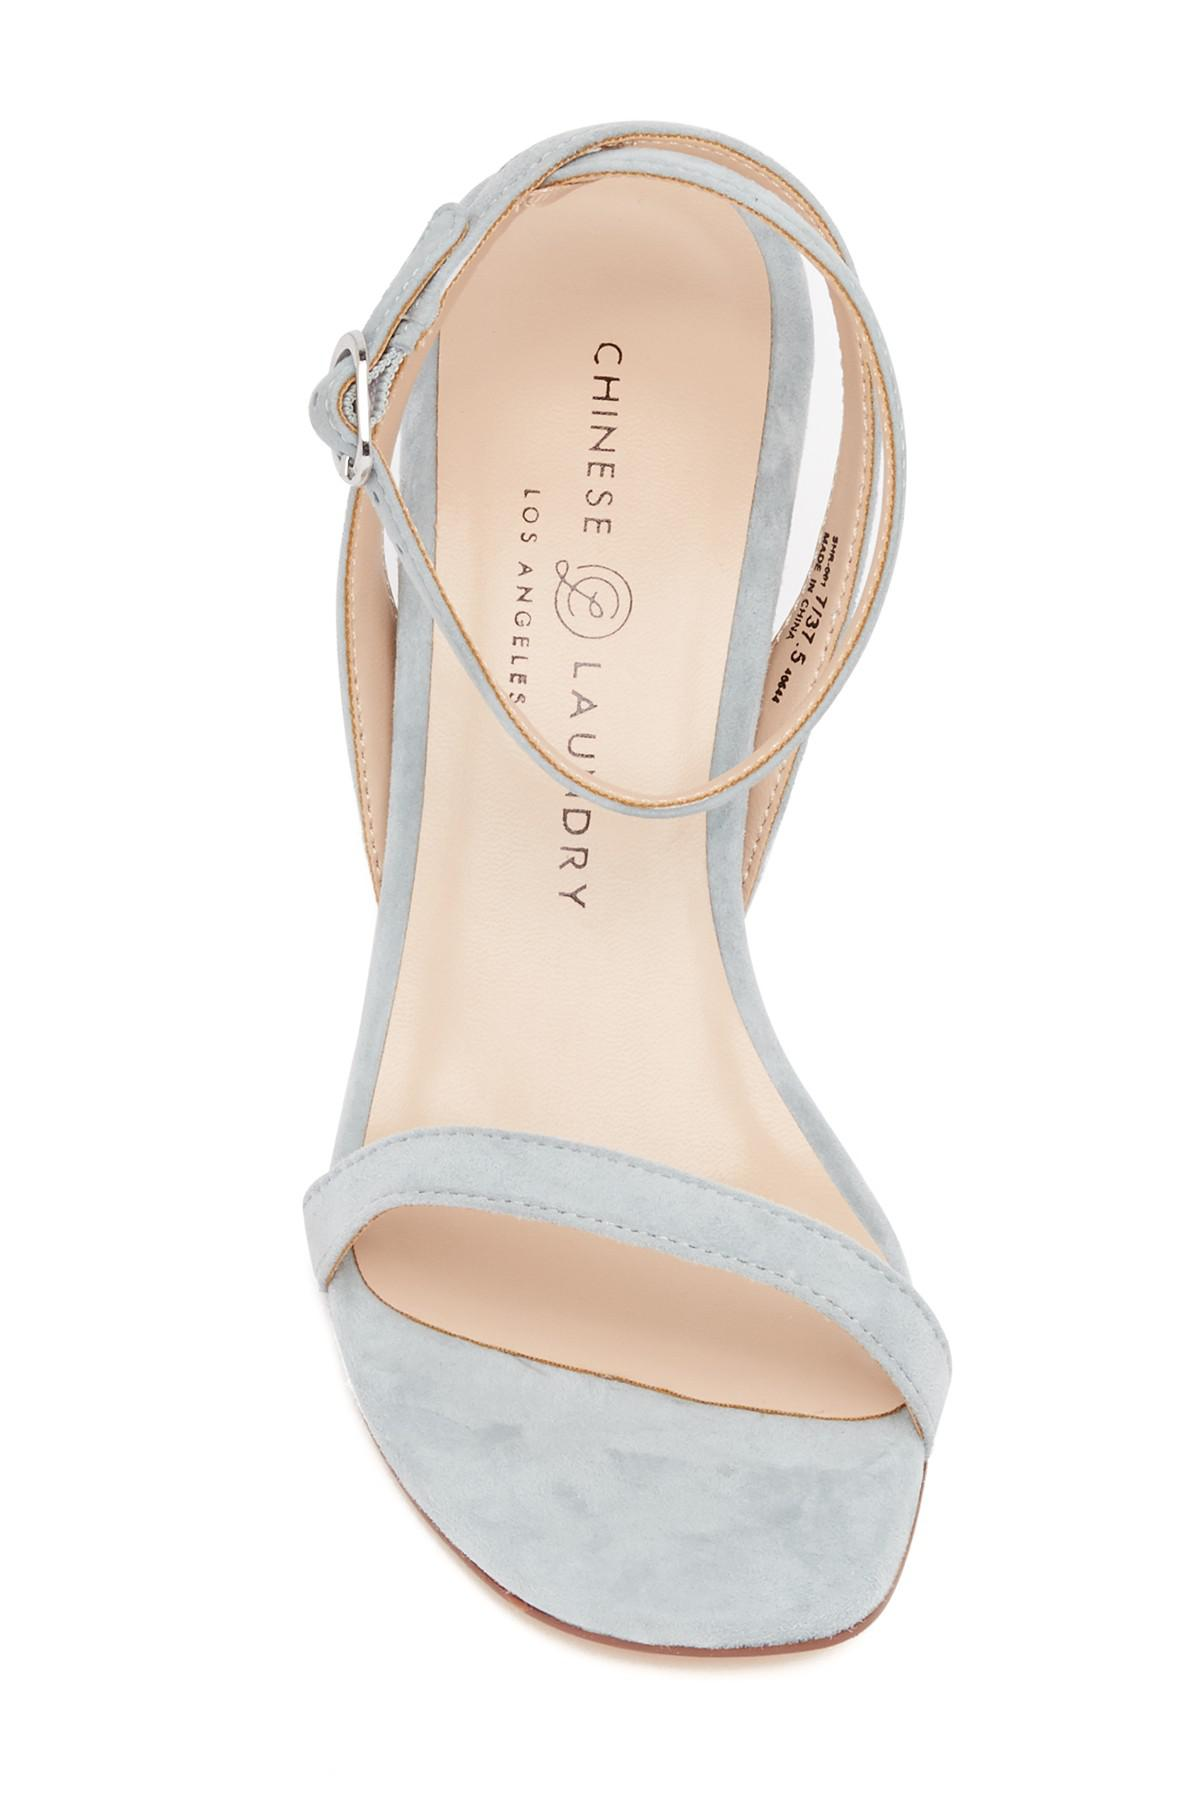 7ca0713af1 Chinese Laundry Shanie Clear Heel Sandal in Blue - Lyst